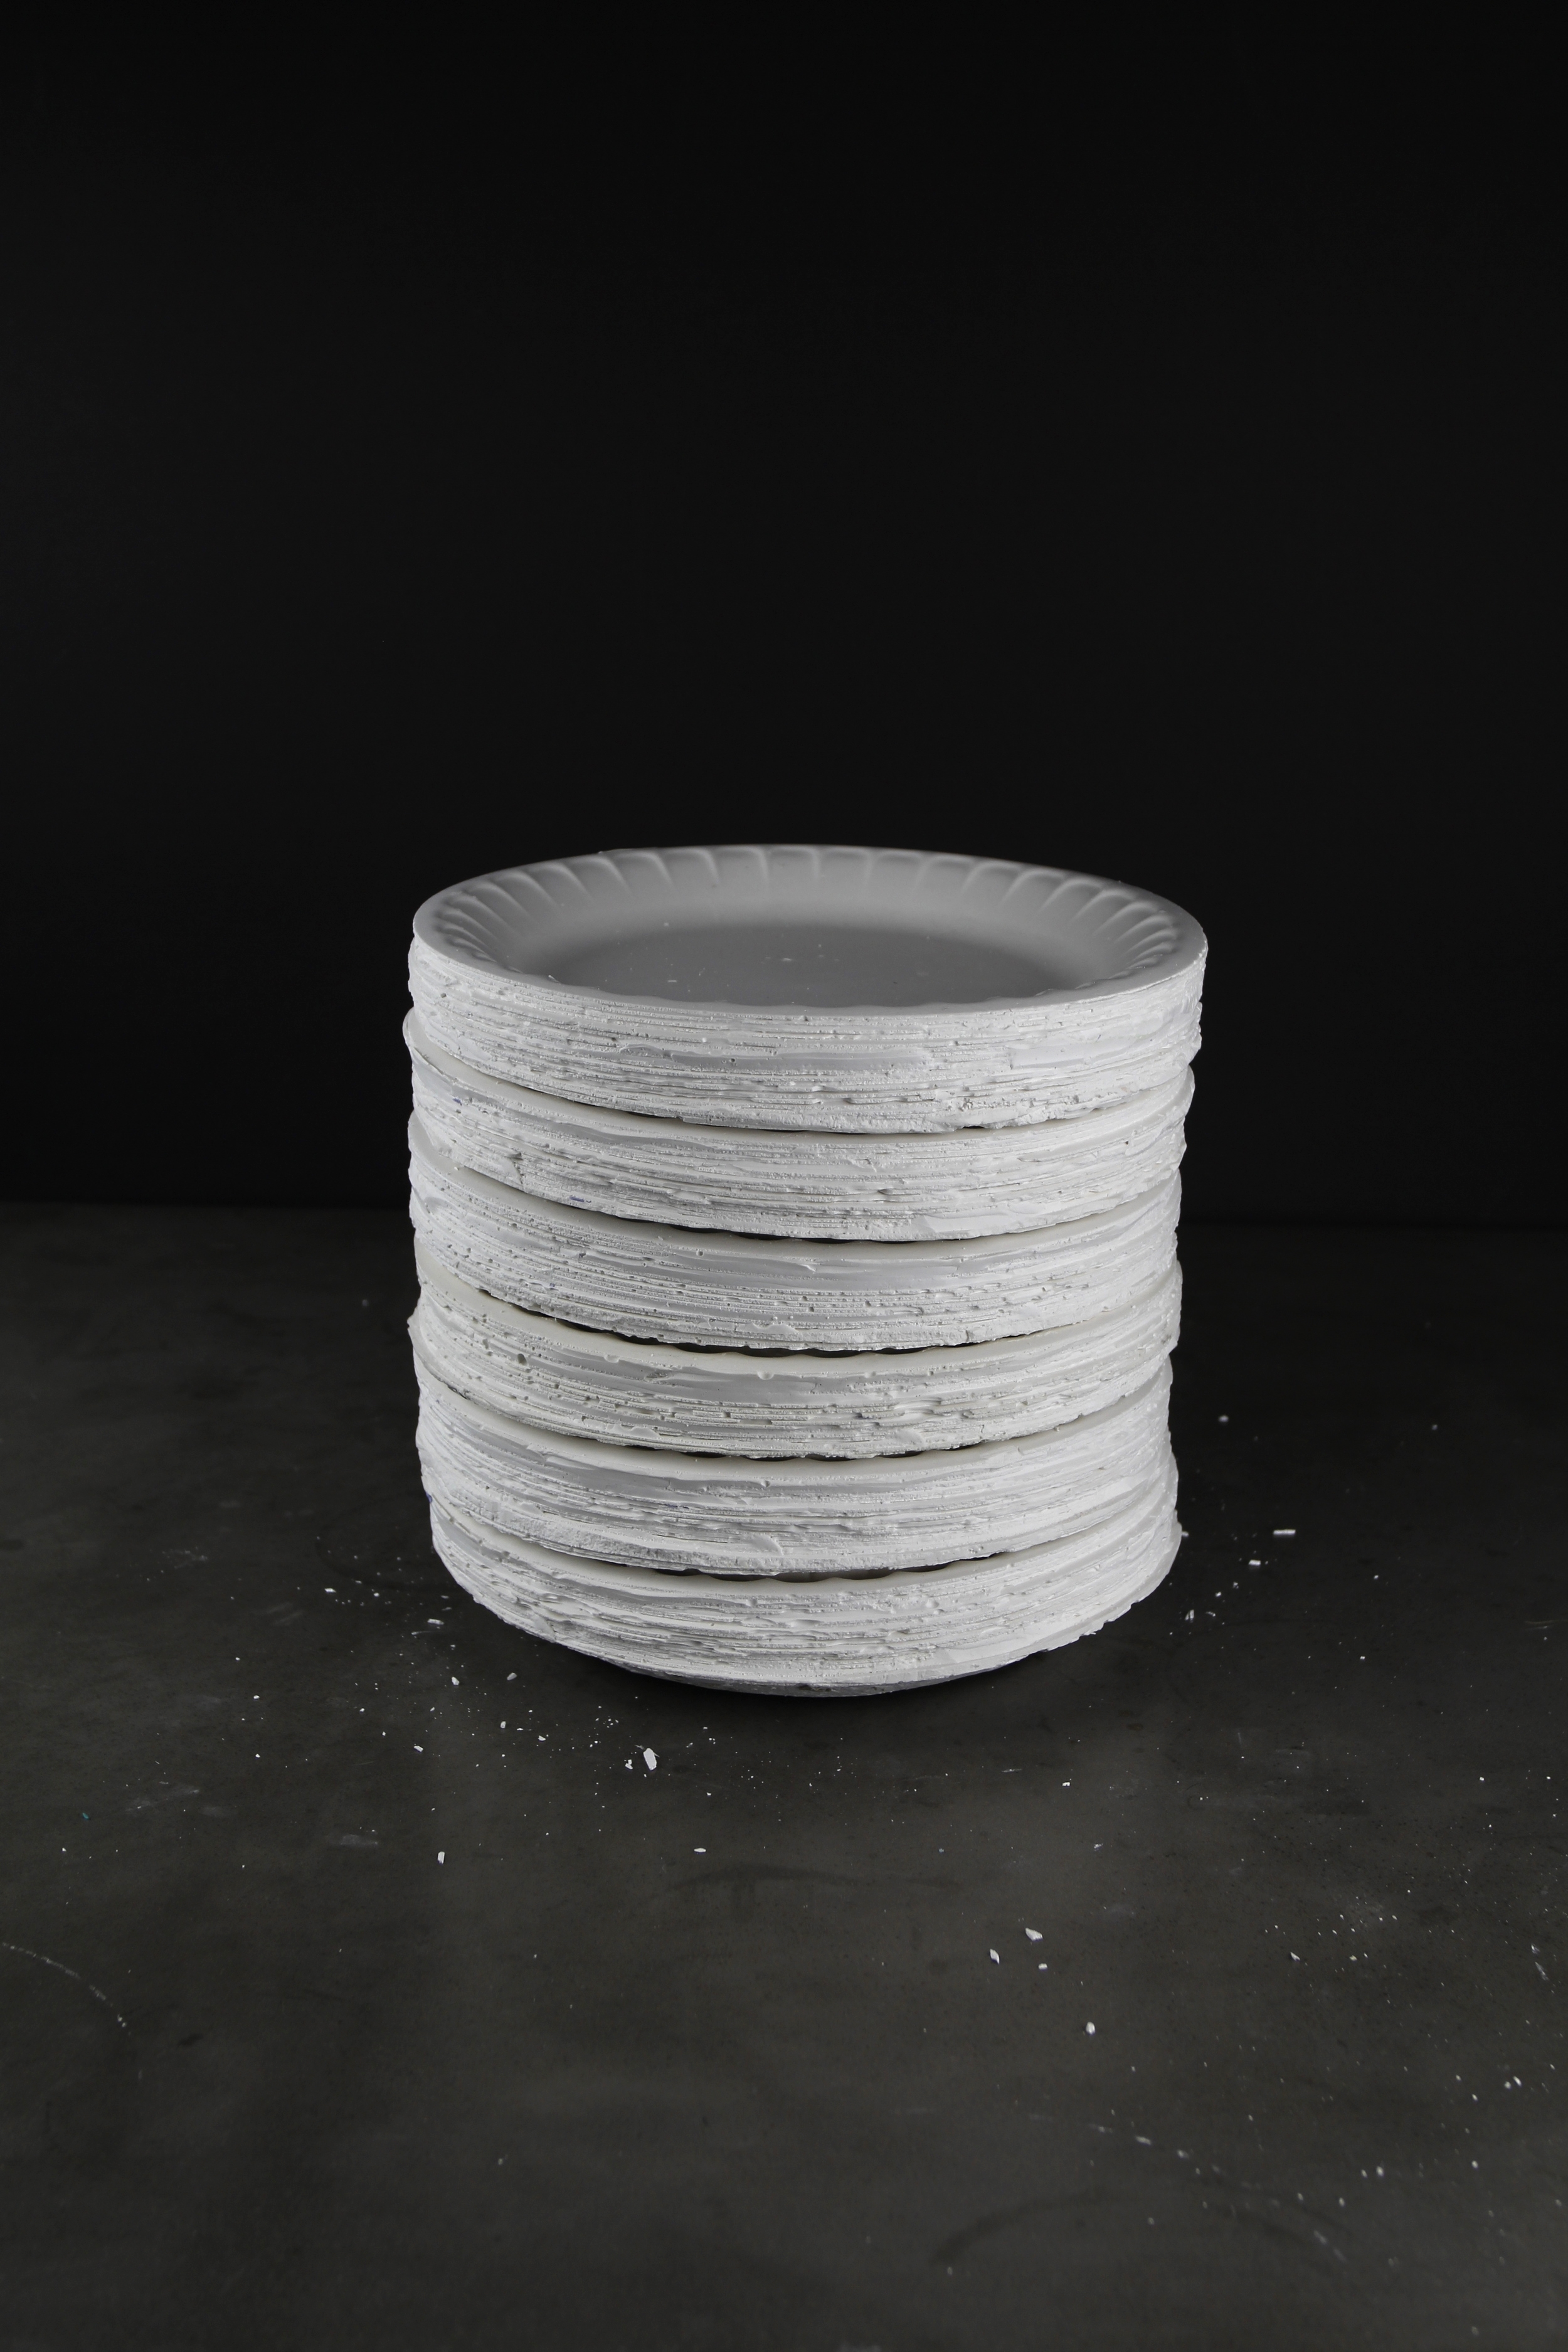 A stack of plates casted in plaster.